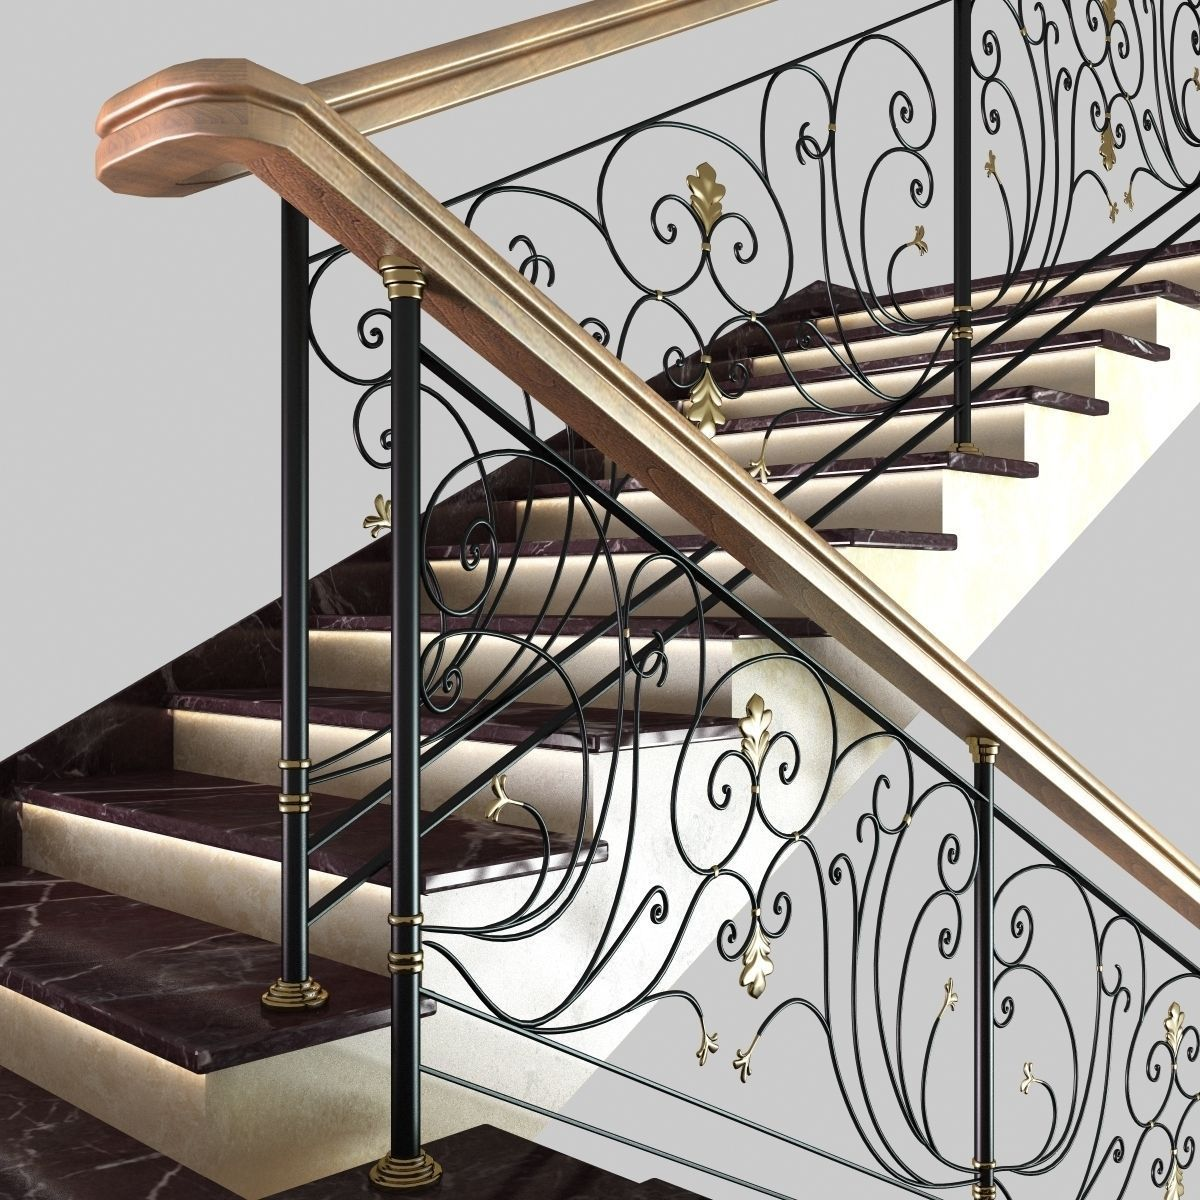 ... Classic Marble Stairs 3d Model Max Obj 3ds Fbx Mtl Unitypackage 8